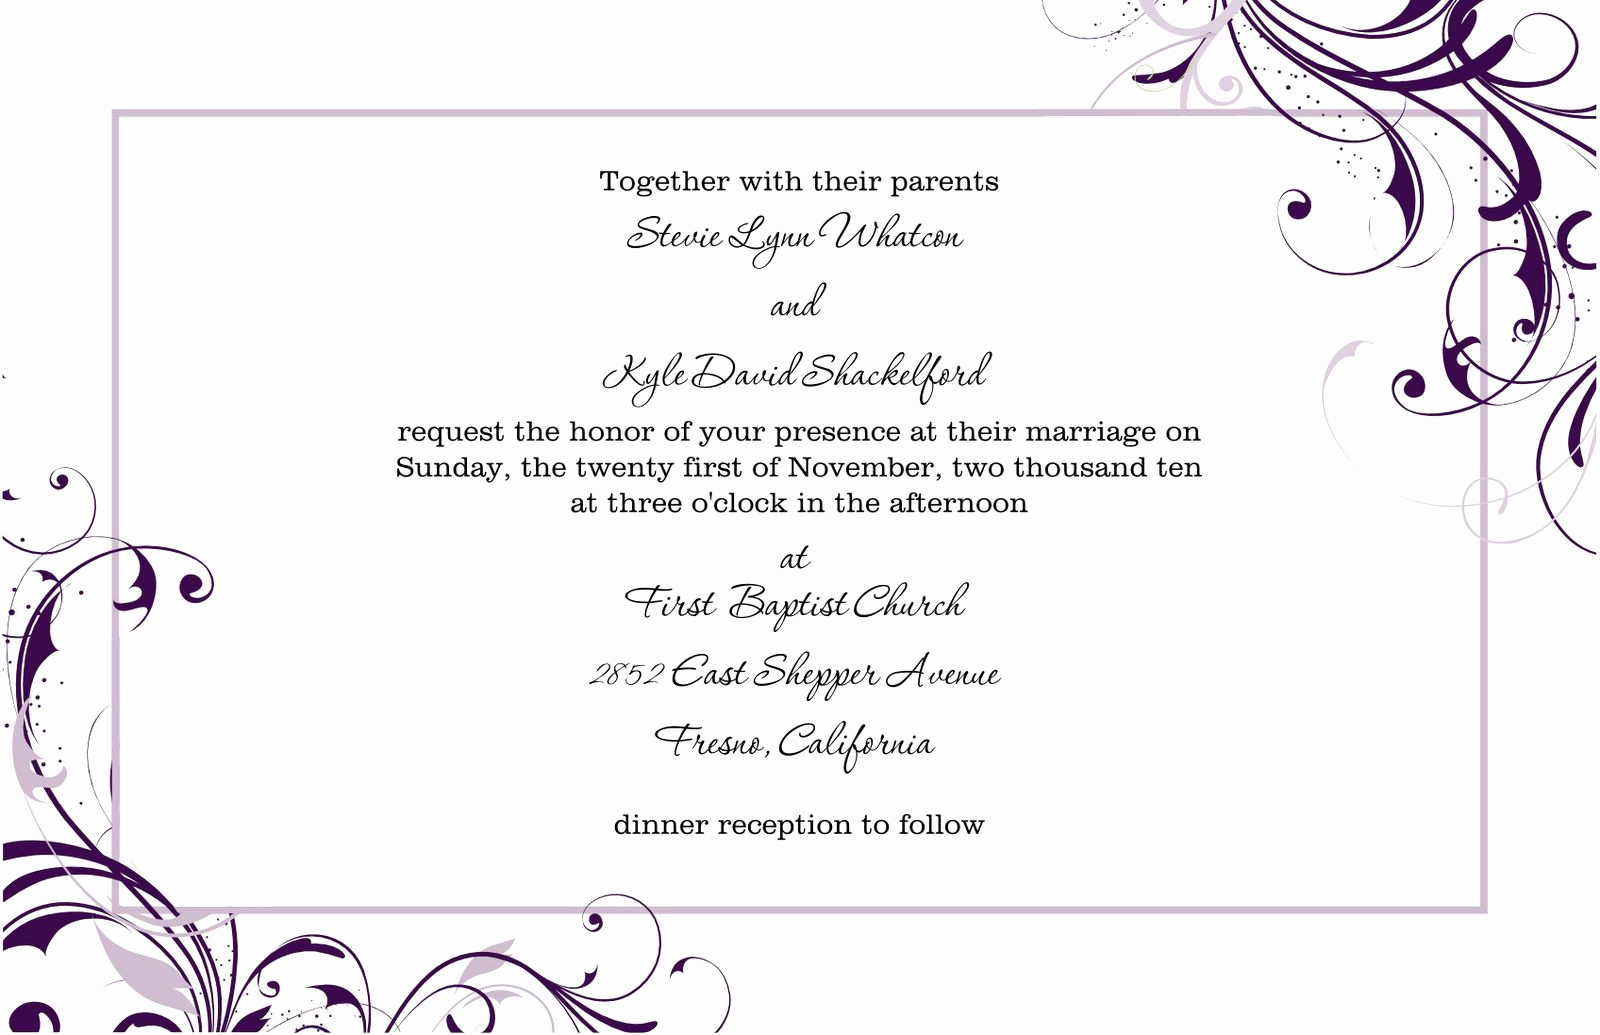 Birthday Invitation Templates Word Elegant Free Blank Wedding Invitation Templates for Microsoft Word